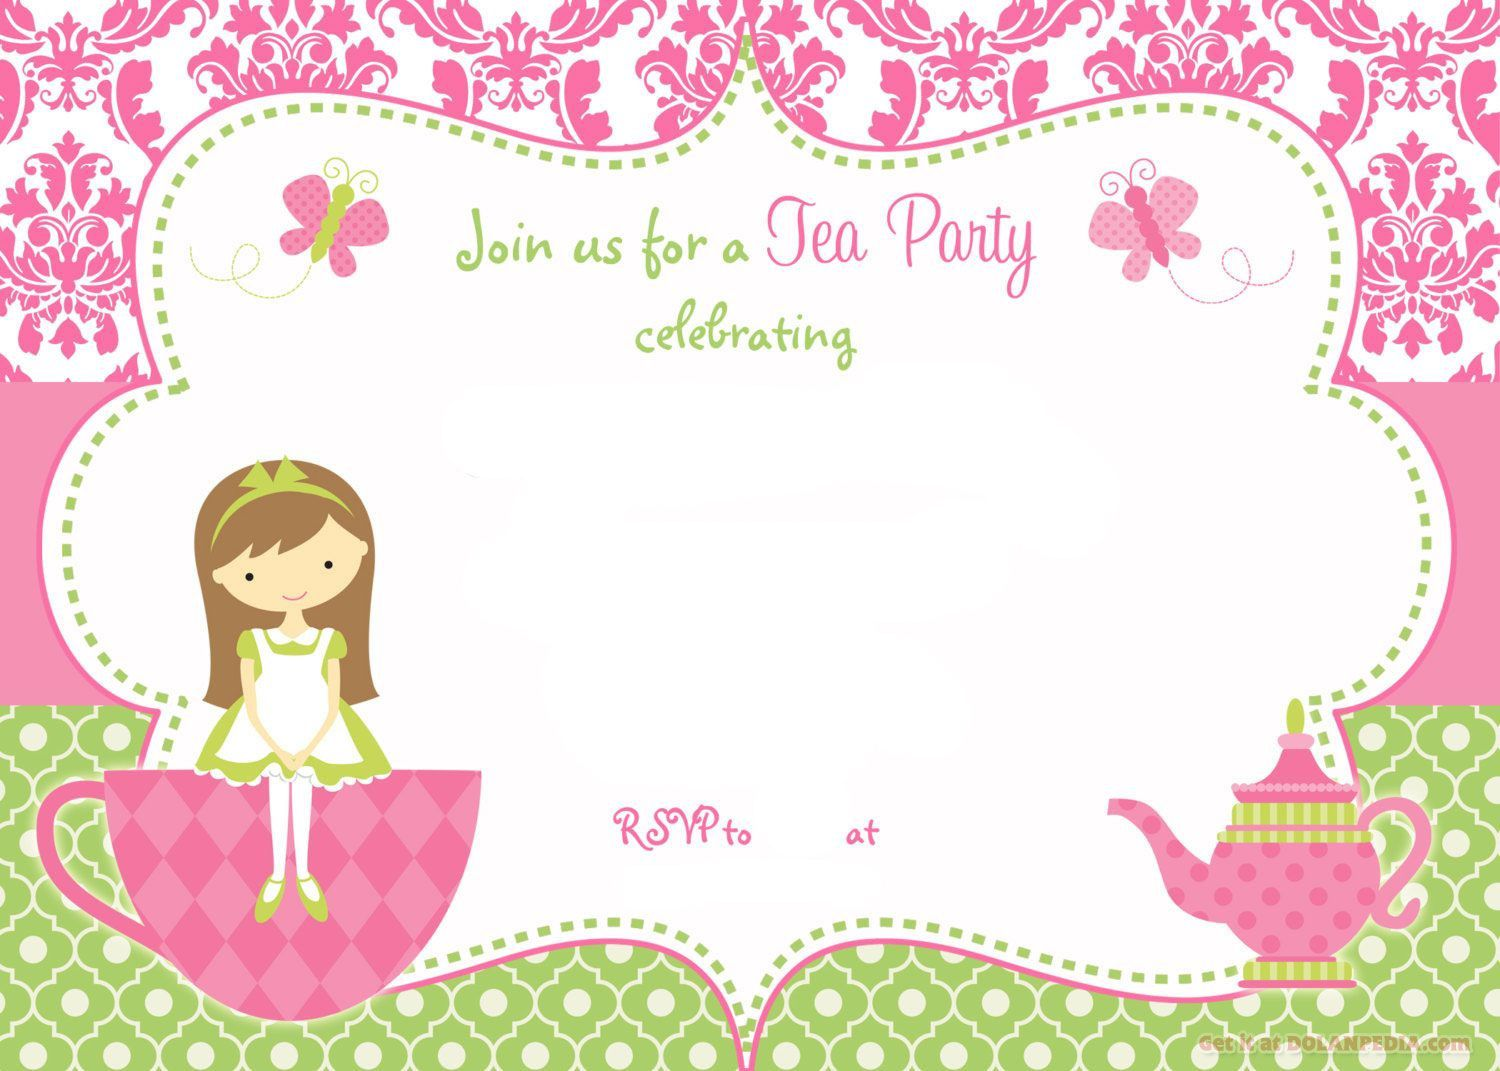 002 Shocking Tea Party Invitation Template High Def  Vintage Free Editable Card PdfFull